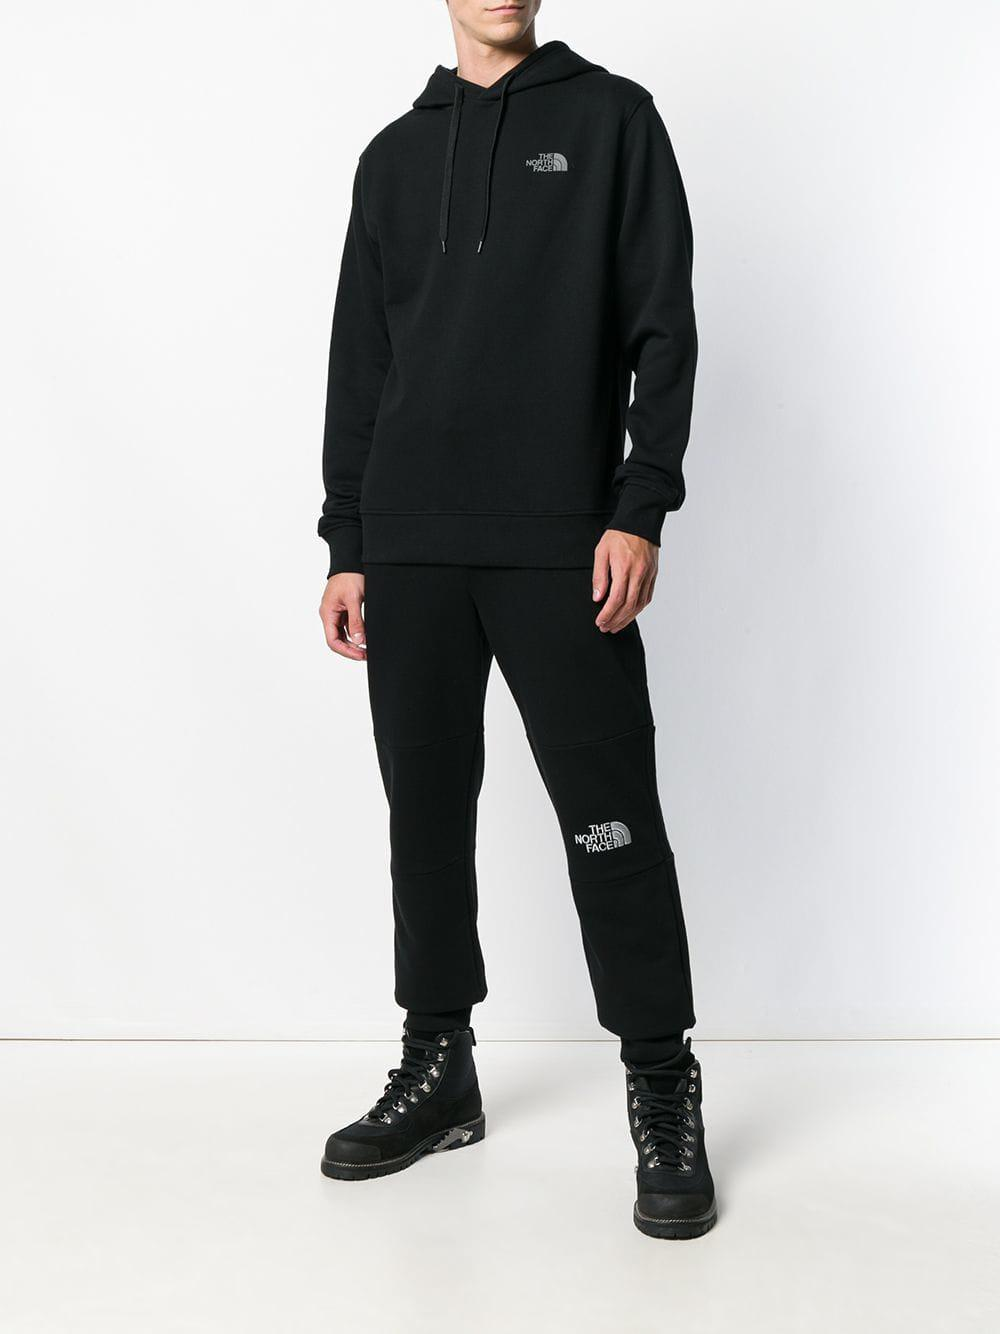 ddb9ff9b3 The North Face Logo Print Hoodie in Black for Men - Lyst